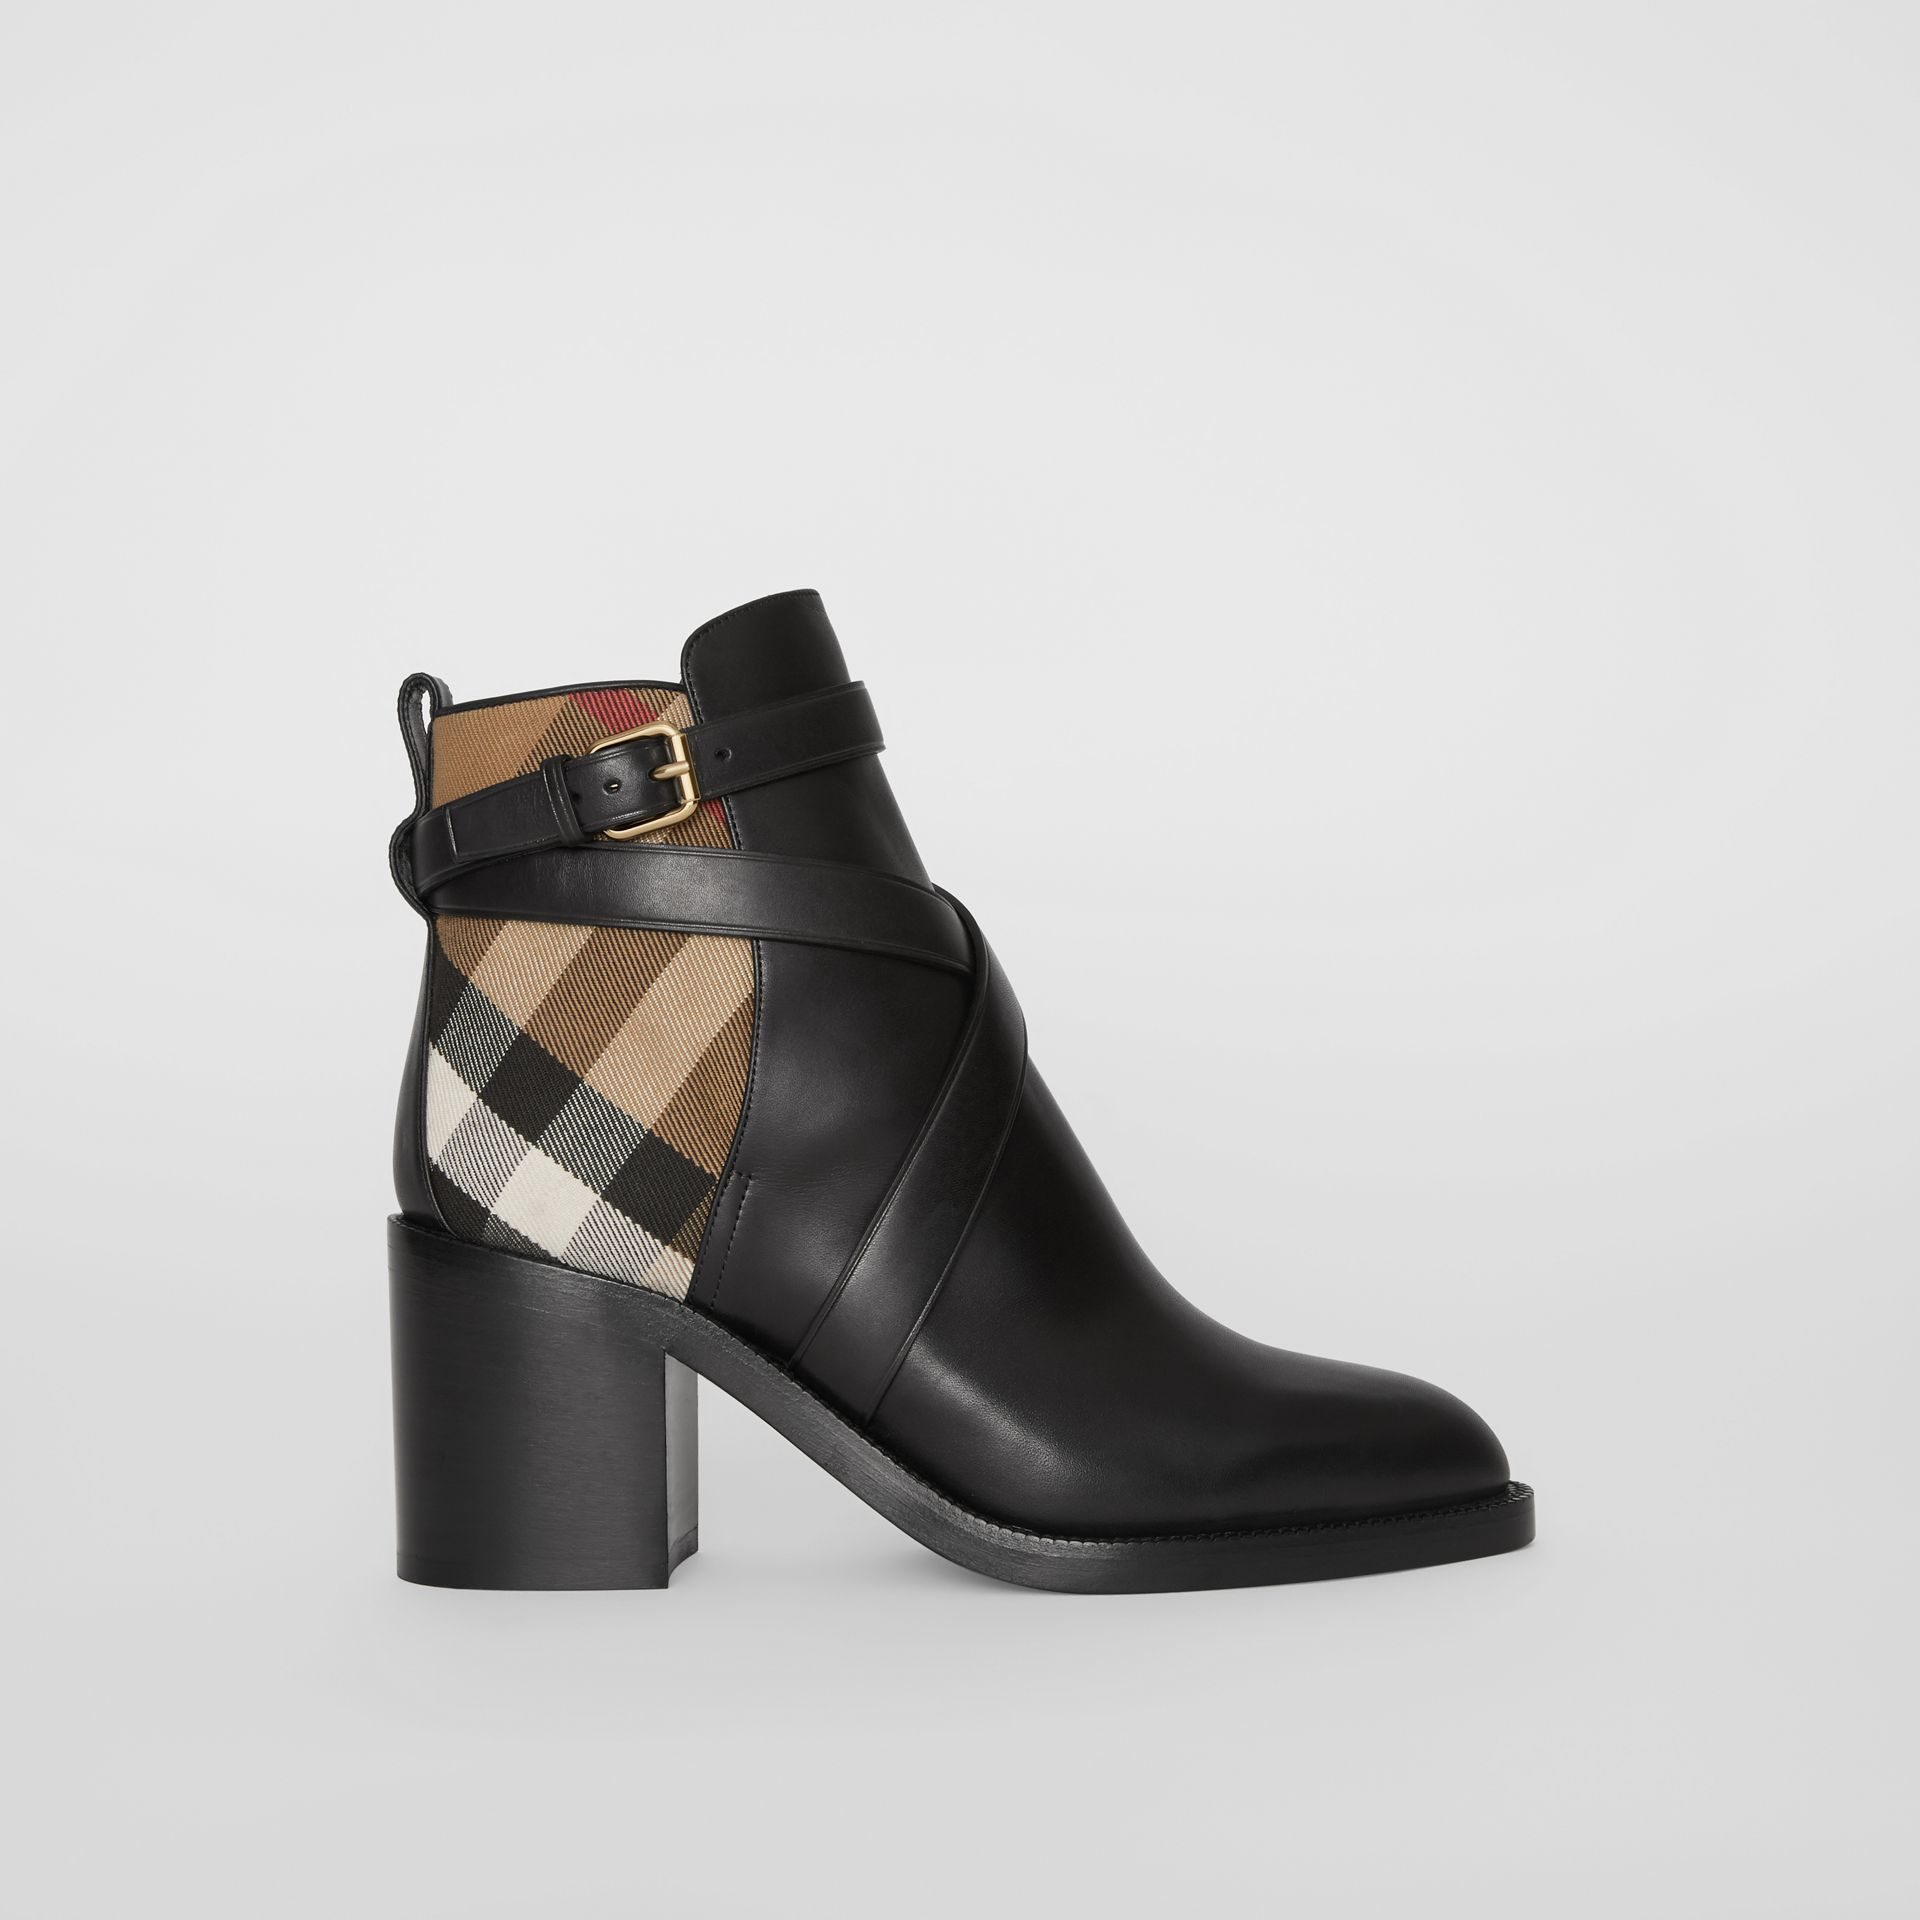 Bottines en cuir et coton House check (Noir) - Femme | Burberry - photo de la galerie 4